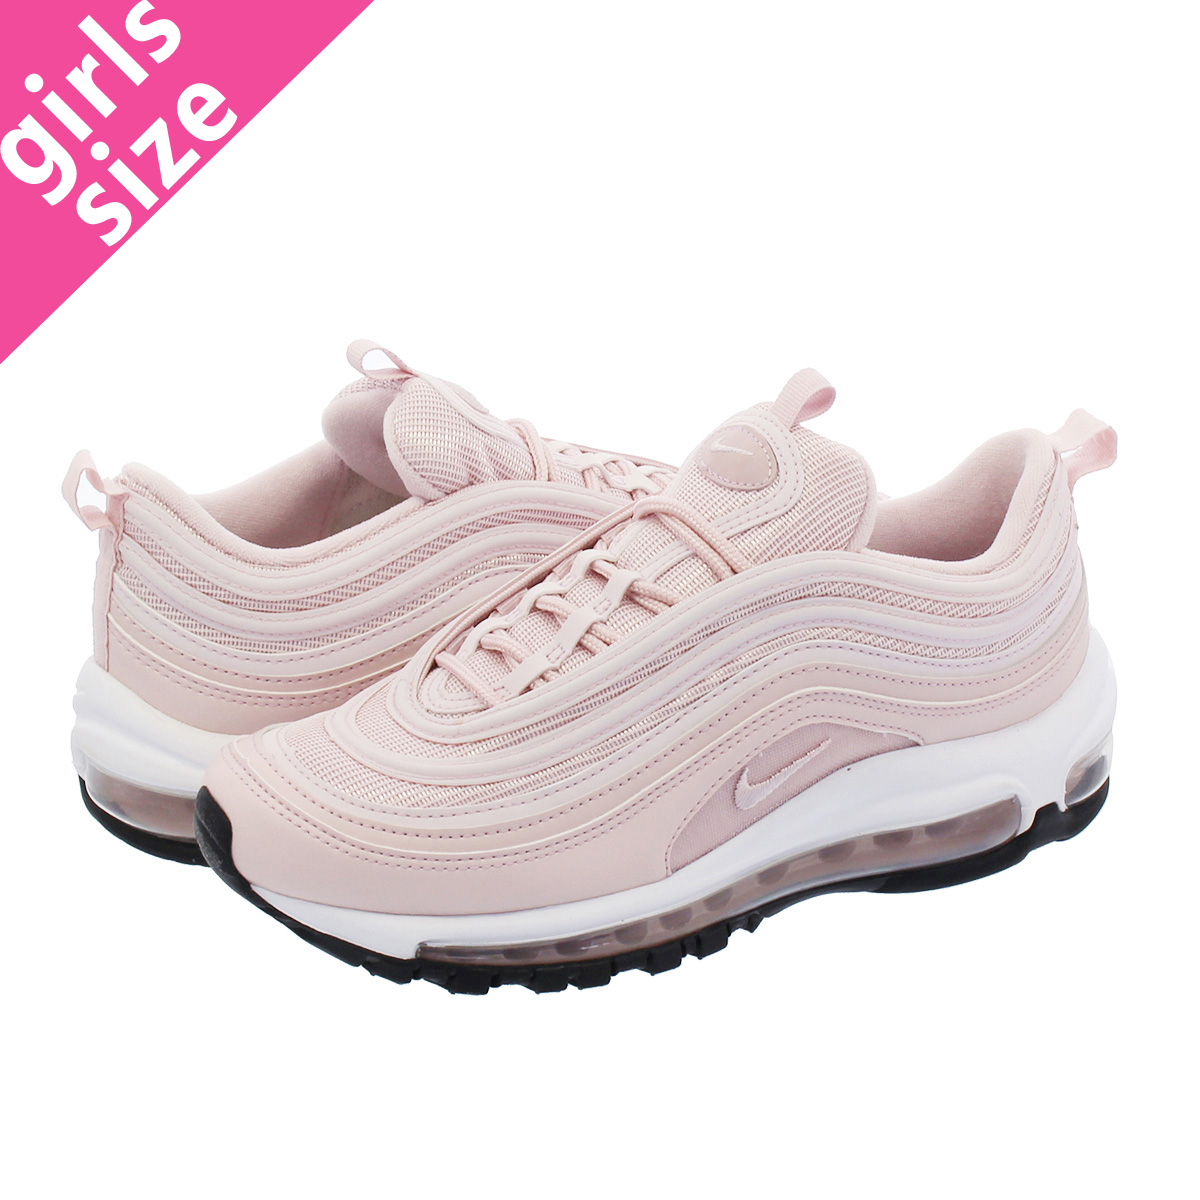 1467f04e80b9 SELECT SHOP LOWTEX  NIKE WMNS AIR MAX 97 Nike women Air Max 97 ...